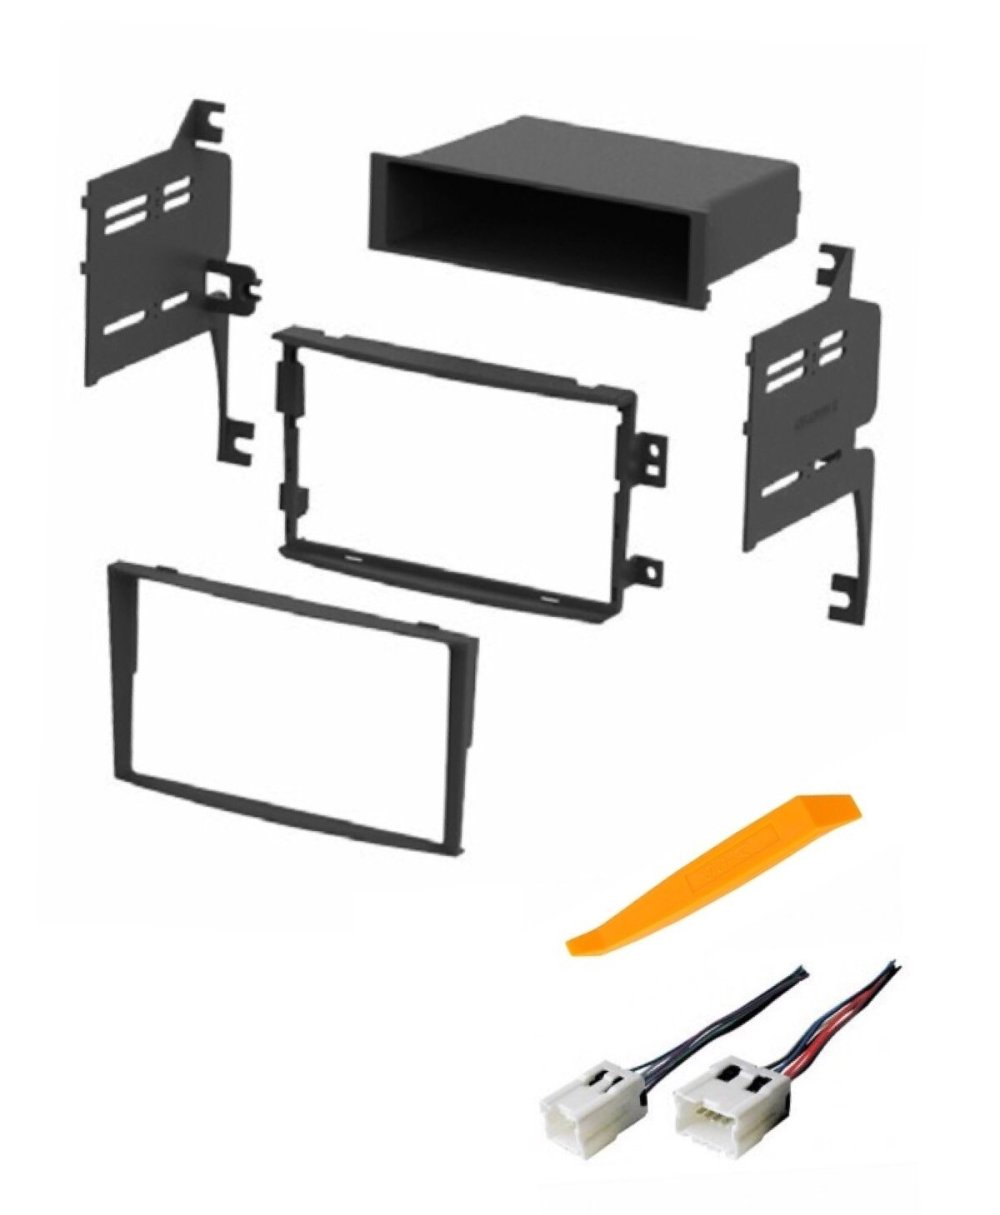 medium resolution of get quotations asc audio car stereo dash install kit and wire harness for installing an aftermarket radio for